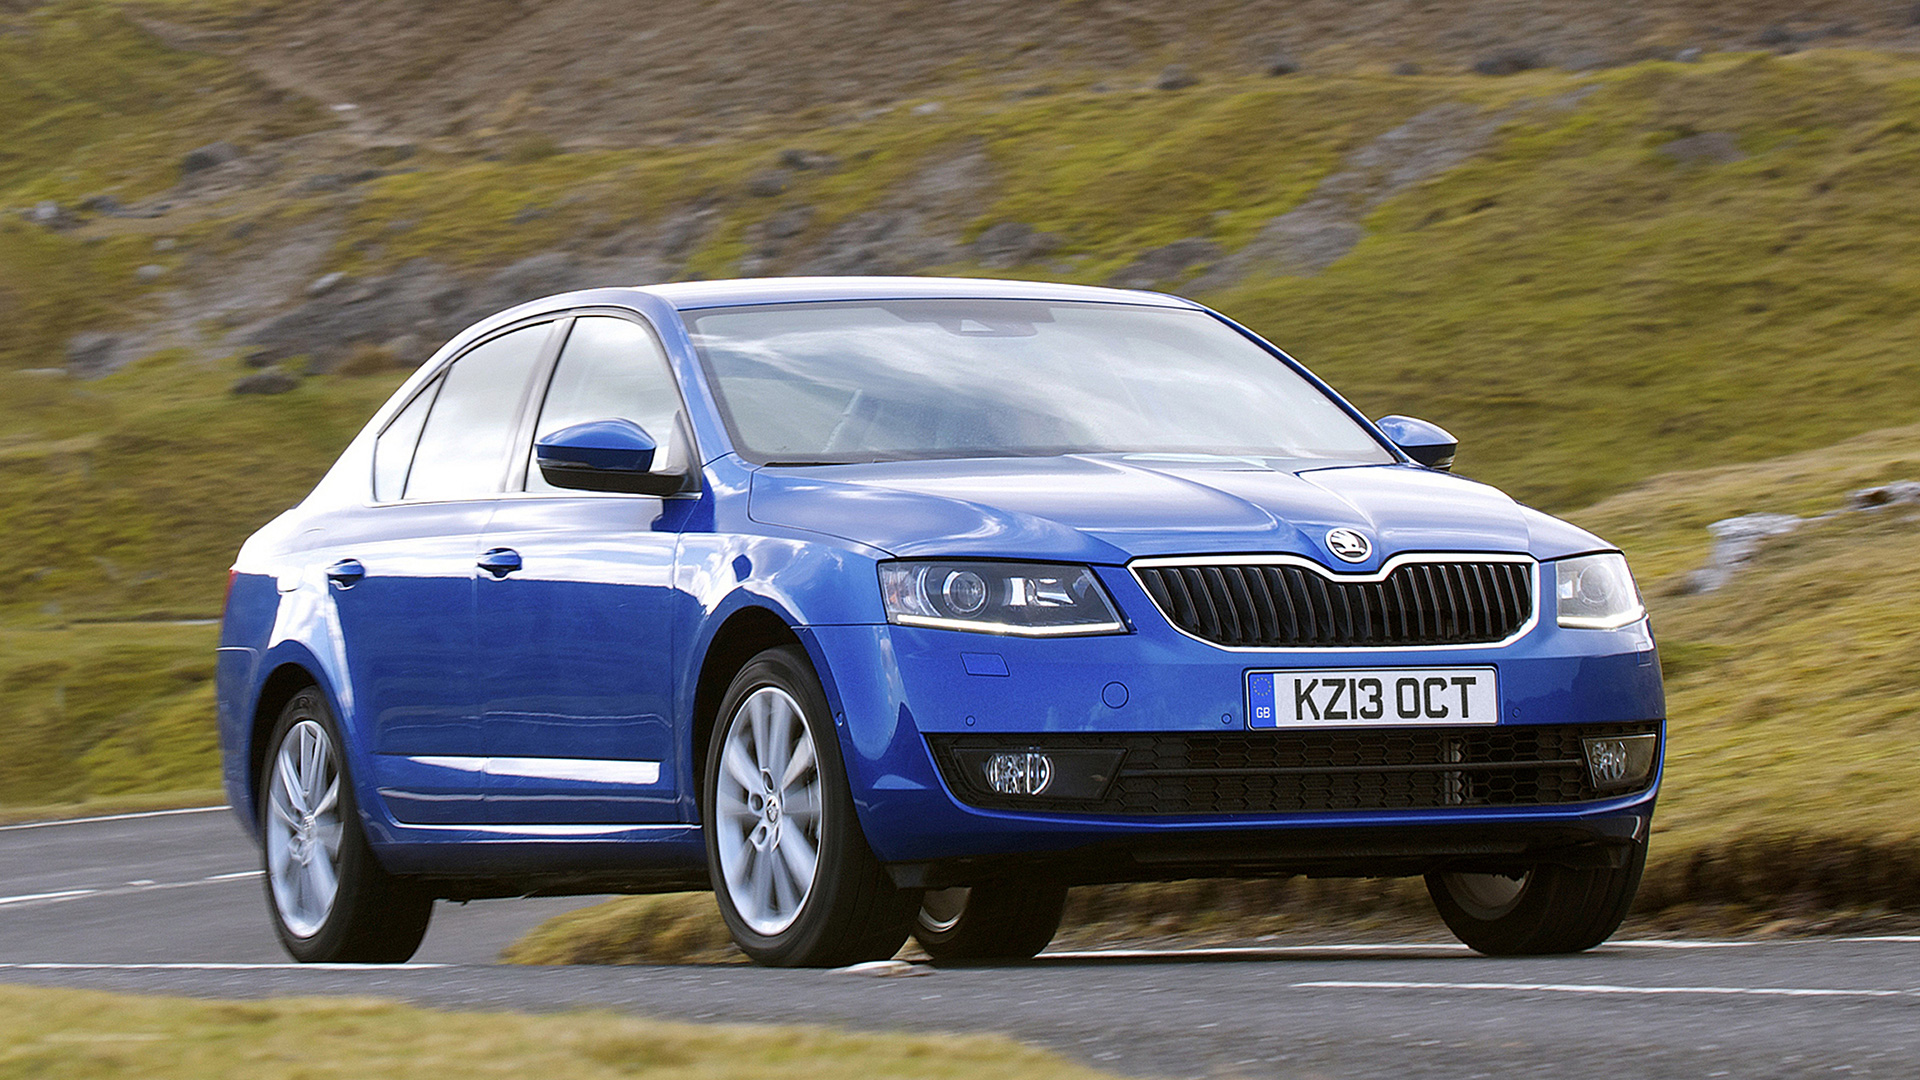 Find Used SKODA Octavia Cars For Sale On Auto Trader UK